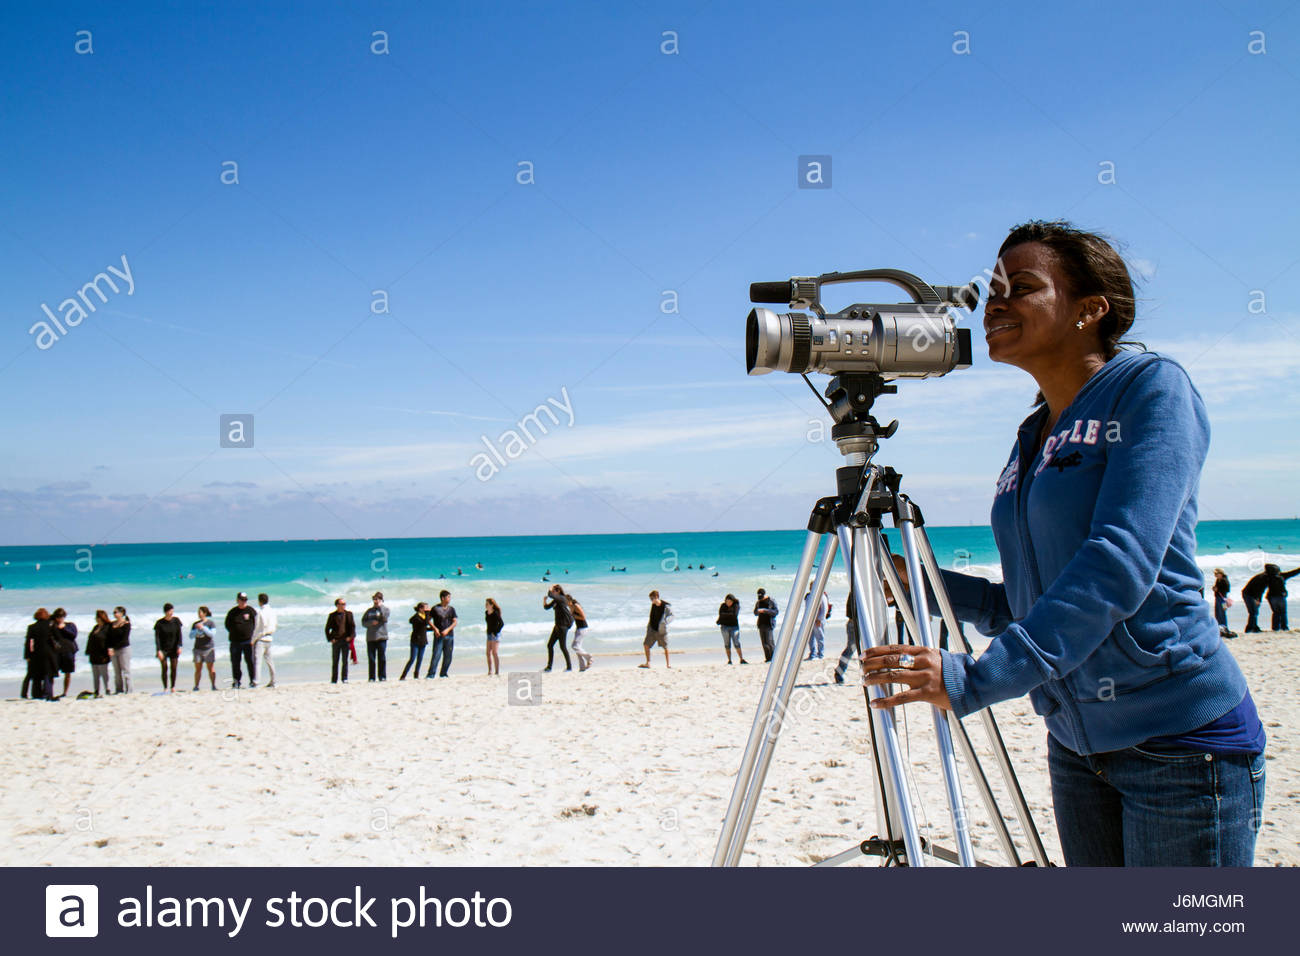 Miami Beach Florida Surfrider Foundation No Offshore Florida Oil Drilling Protest black clothing represents oil - Stock Image